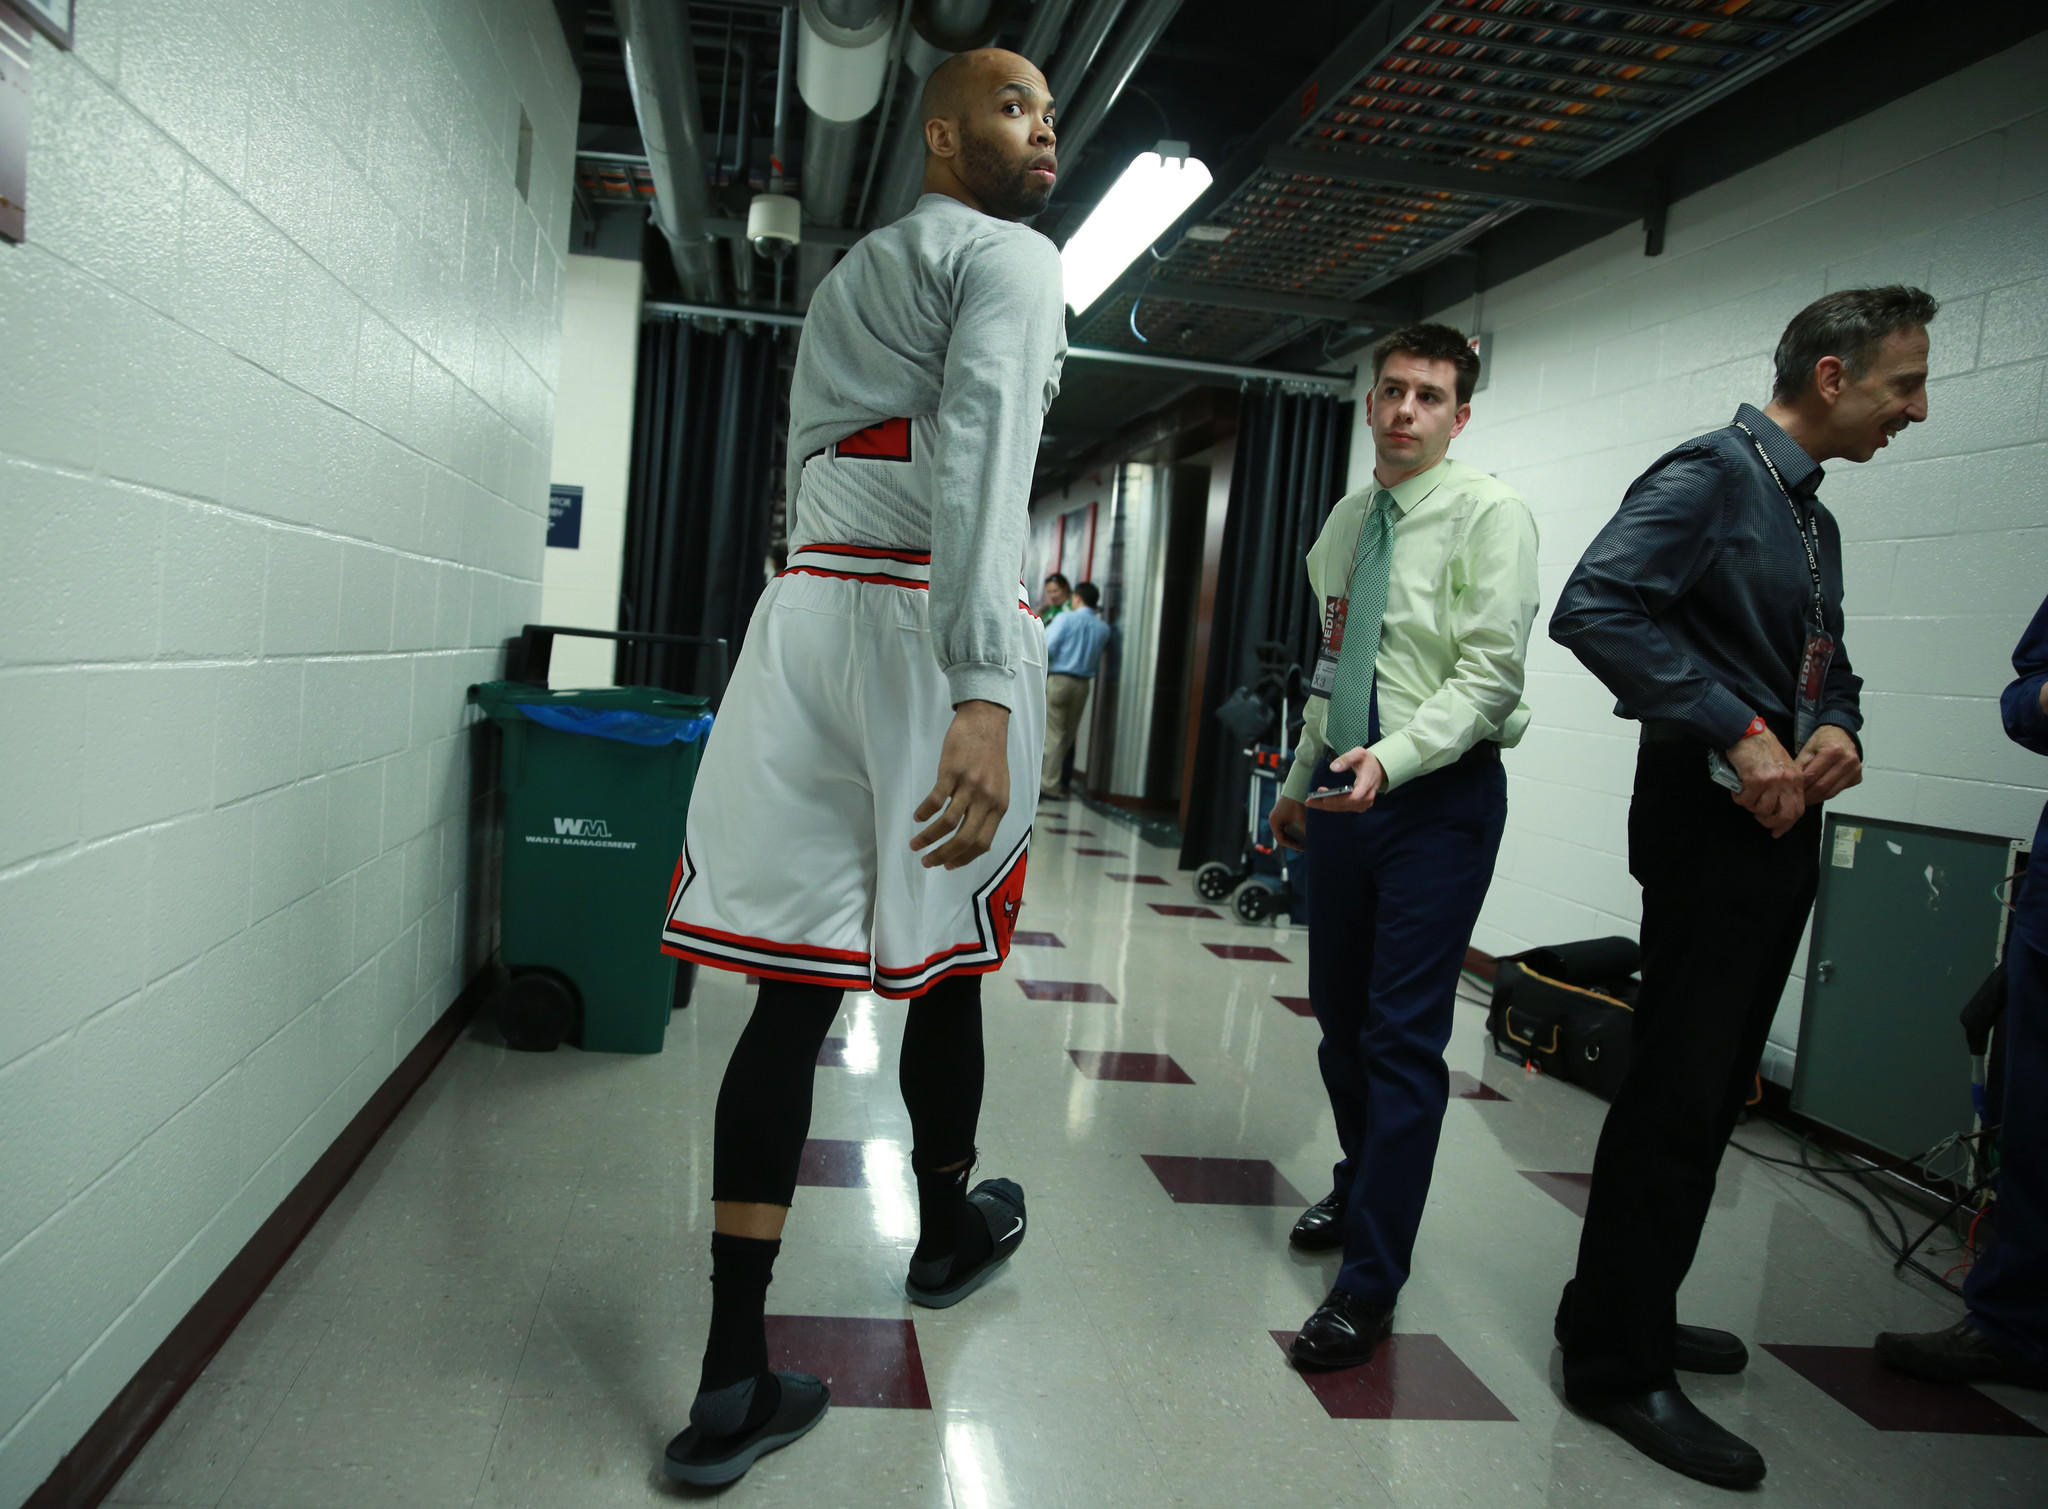 Chicago Bulls player Taj Gibson walks to the locker room before Game 5 of the Eastern Conference Quarterfinals against the Washington Wizards at the United Center on April 29, 2014 in Chicago.